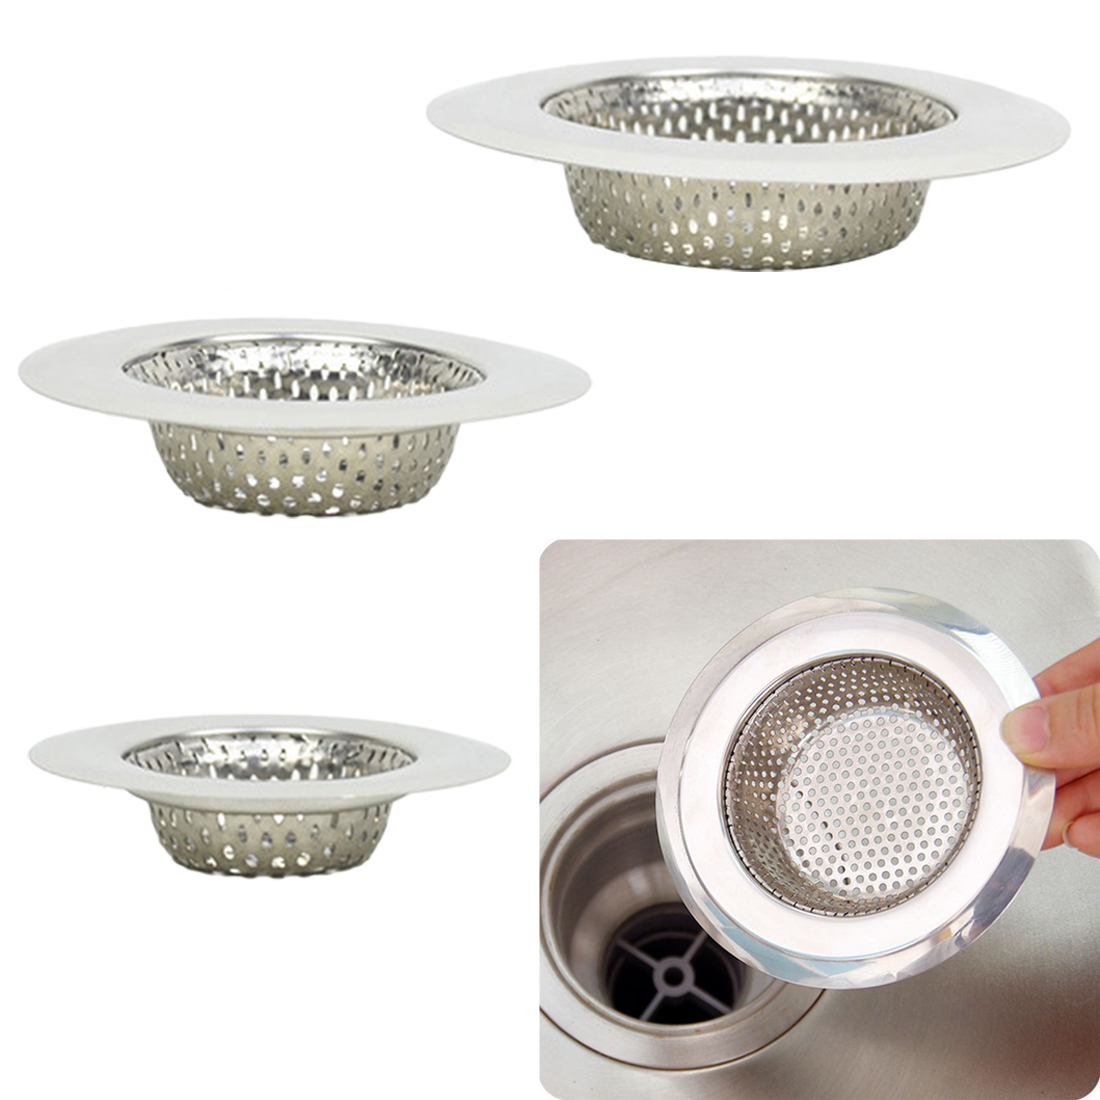 7cm/9cm/11cm Kitchen Sink Strainer Drain Hole Filter Trap Metal Sink Strainer Stainless Steel Bath Sink Drain Waste Screen